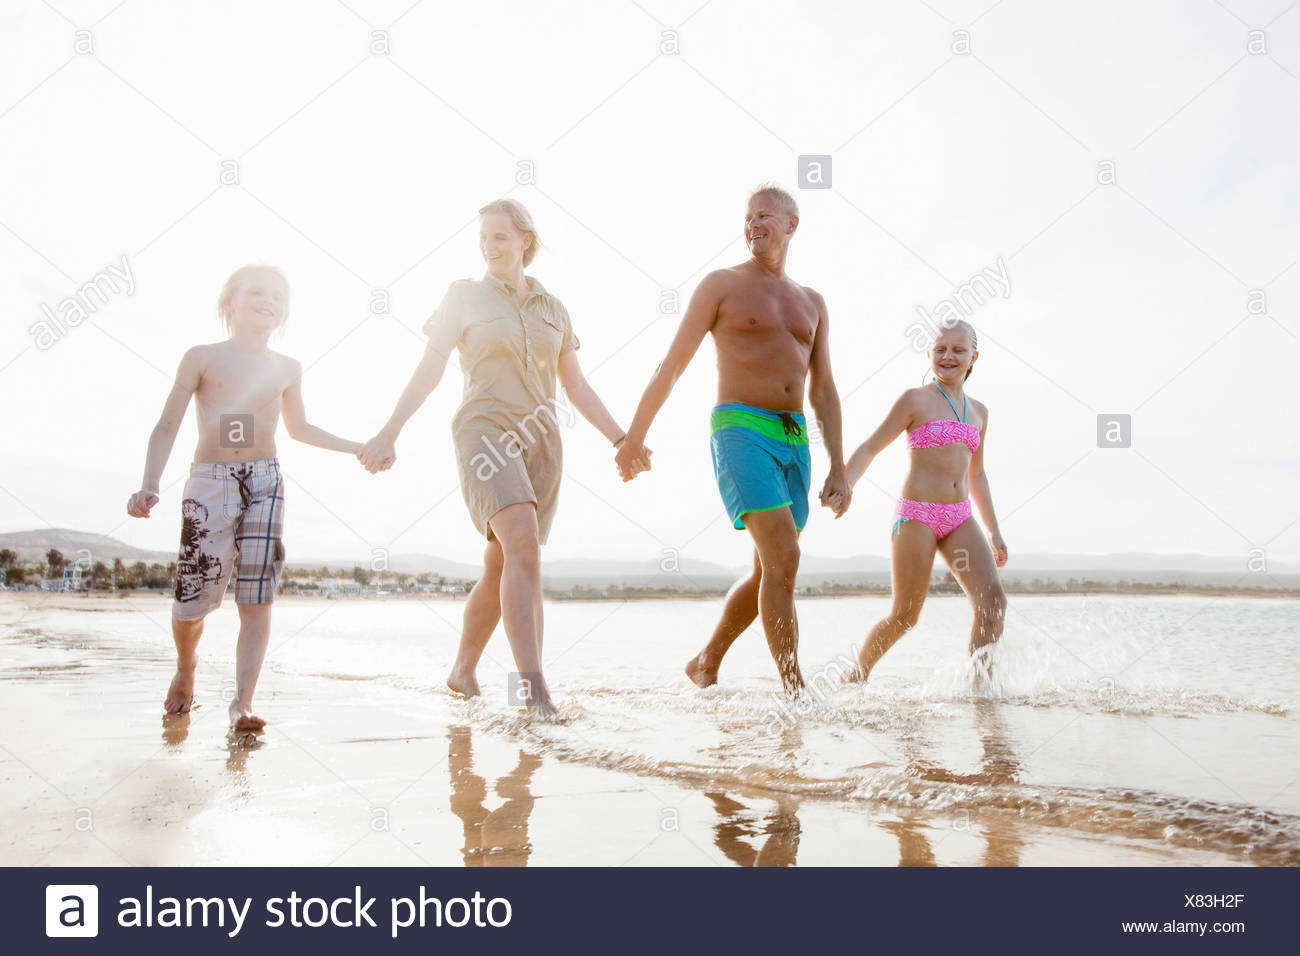 Family with two children strolling and holding hands on beach - Stock Image